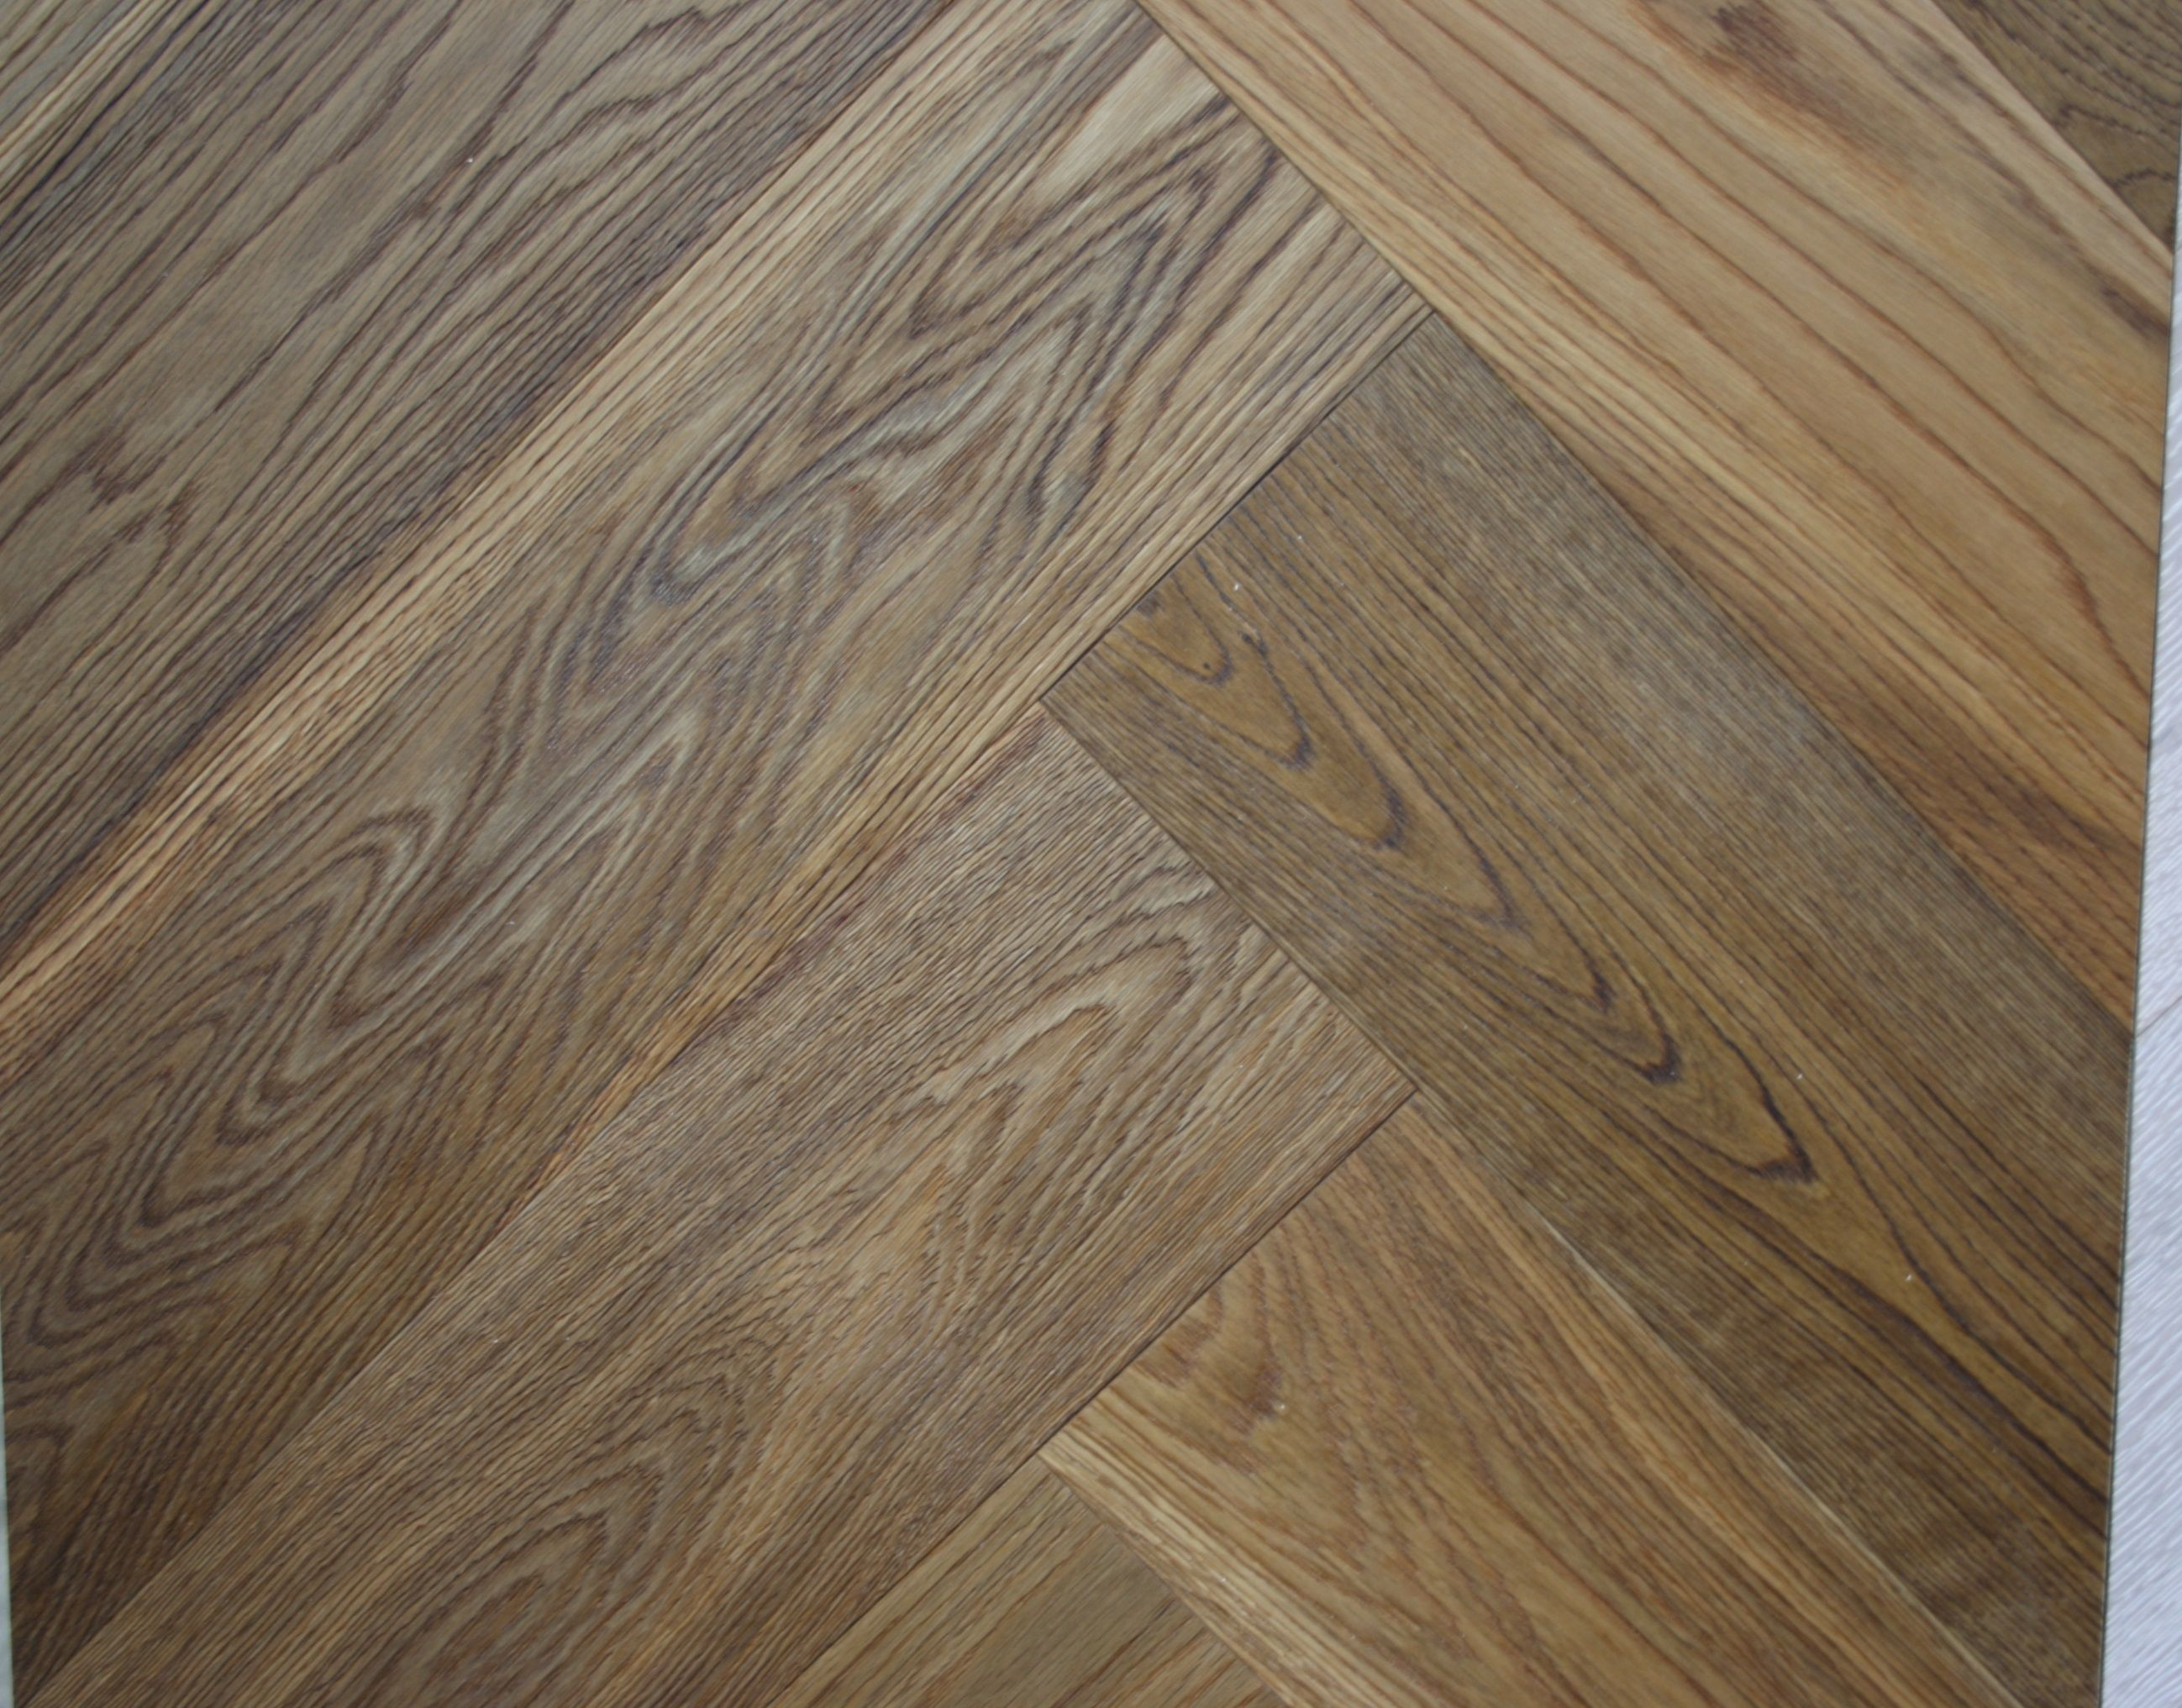 Smoked brushed and sealed Engineered oak herringbone